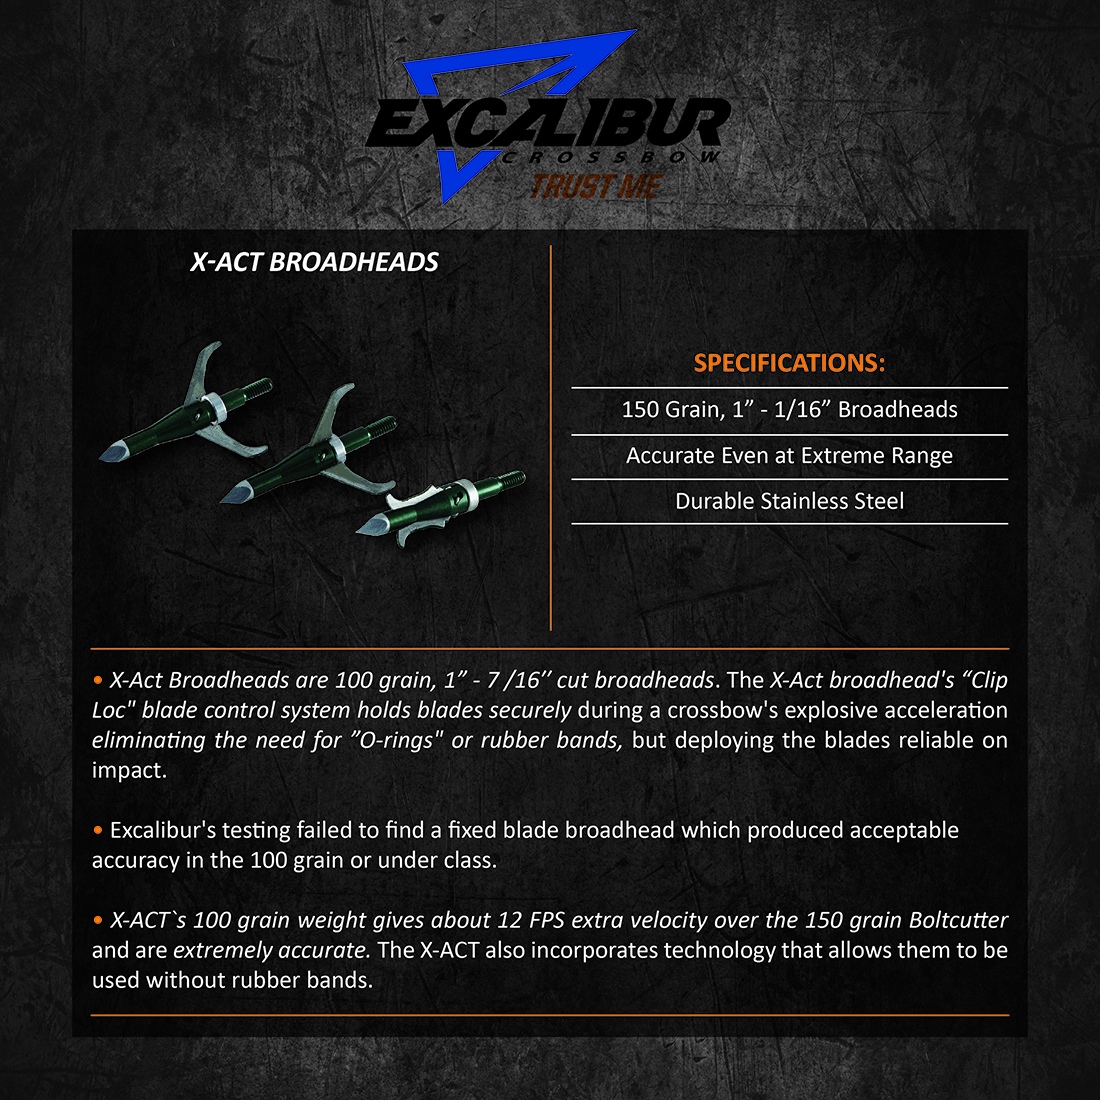 Excalibur_X-Act_Broadheads_Product_Description